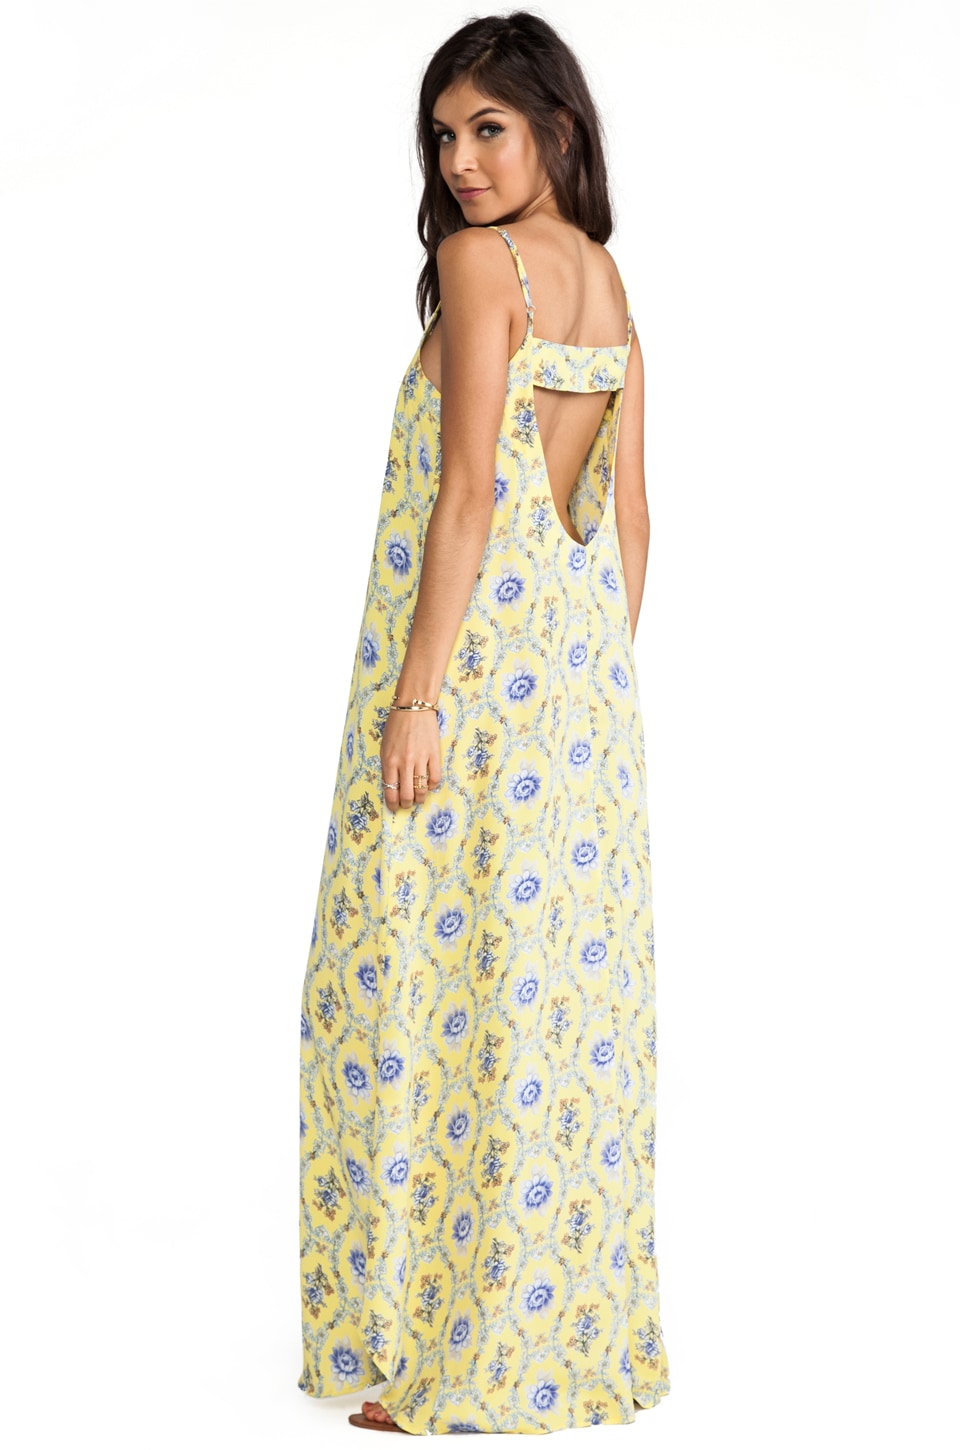 FLYNN SKYE Backstrap Maxi in Yellow Delight